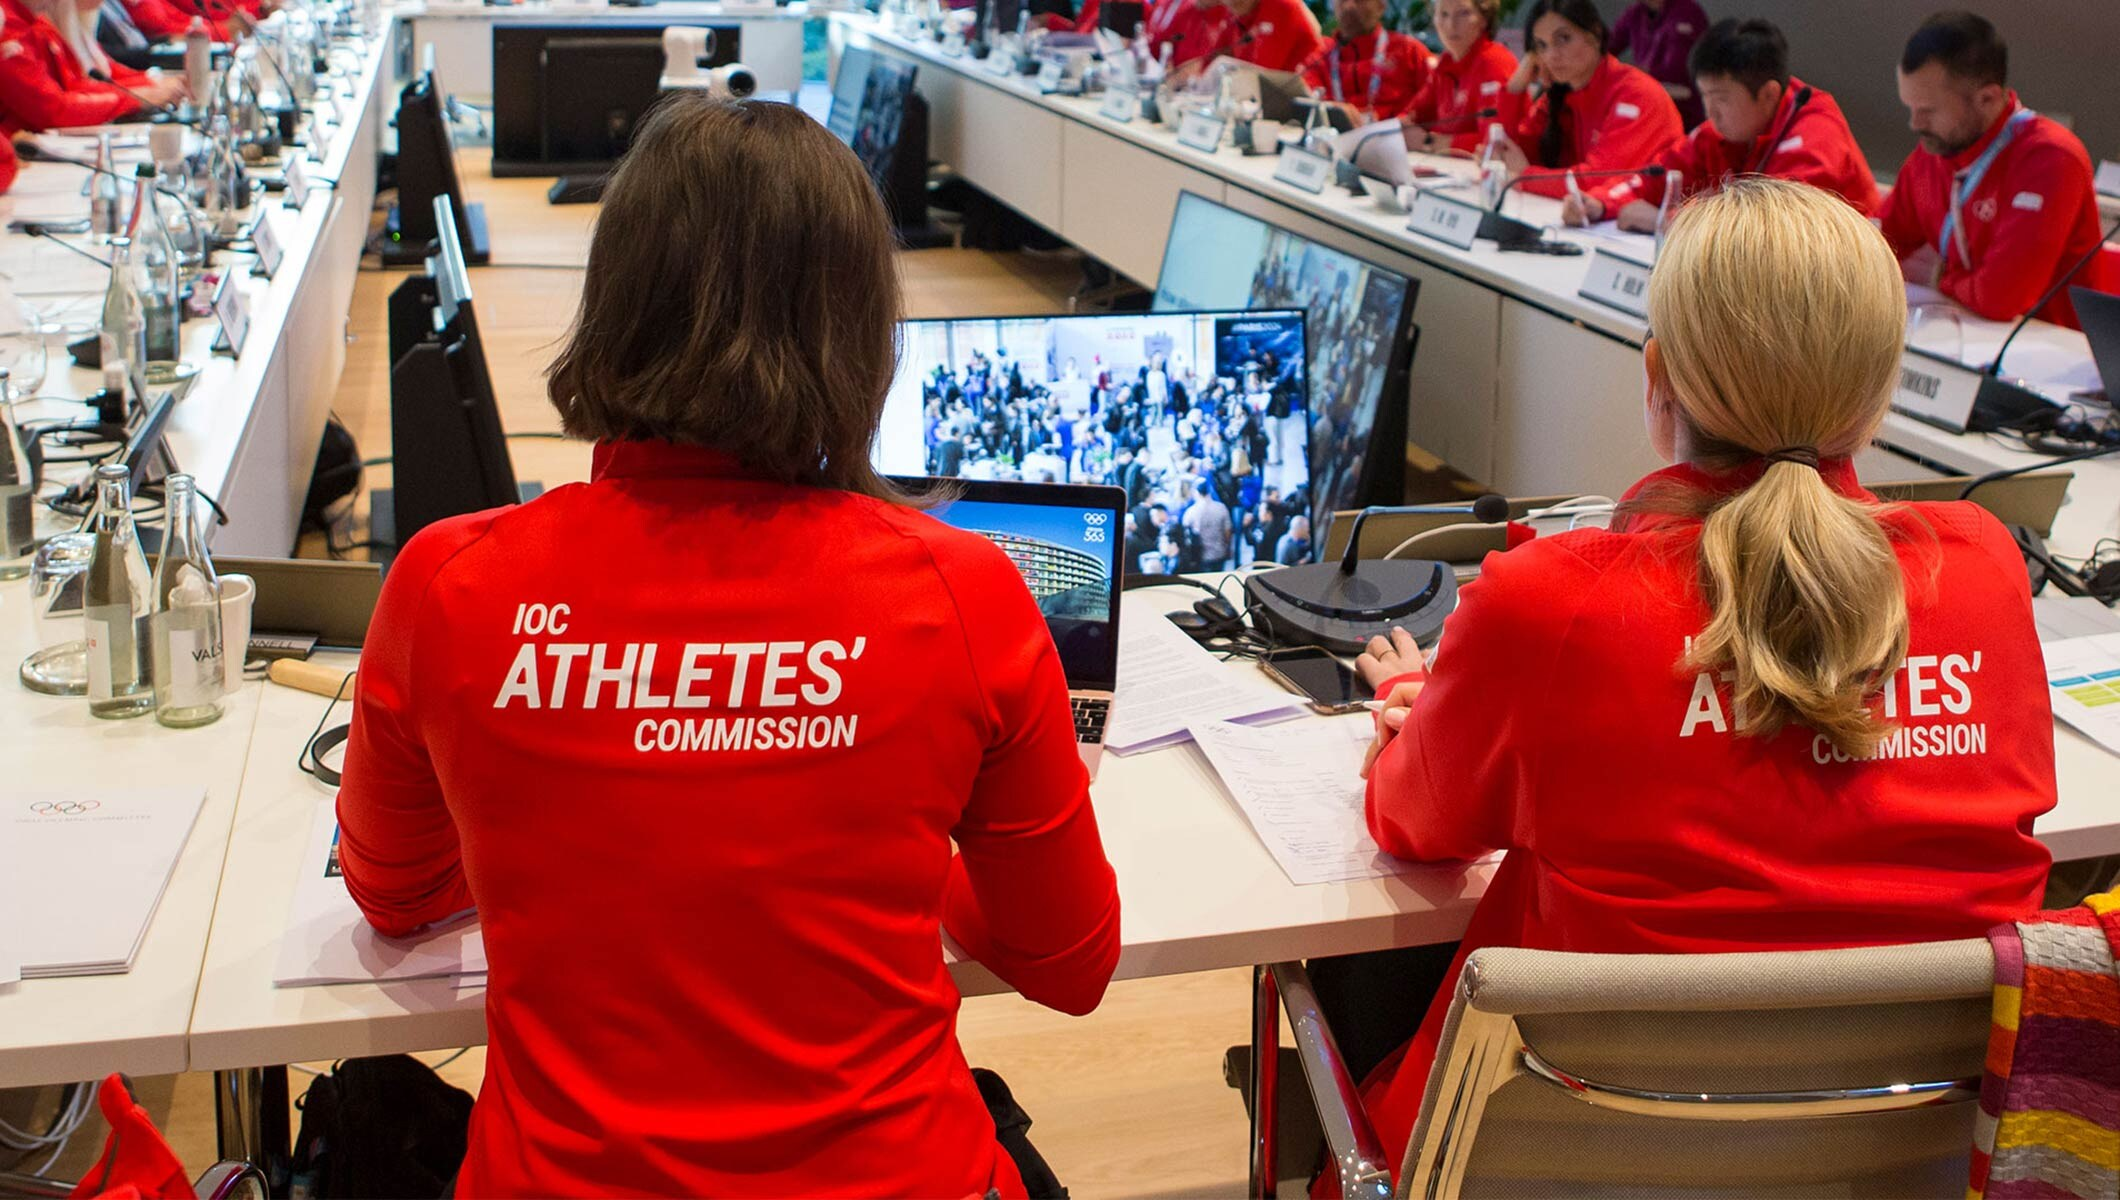 Athletes' Commission